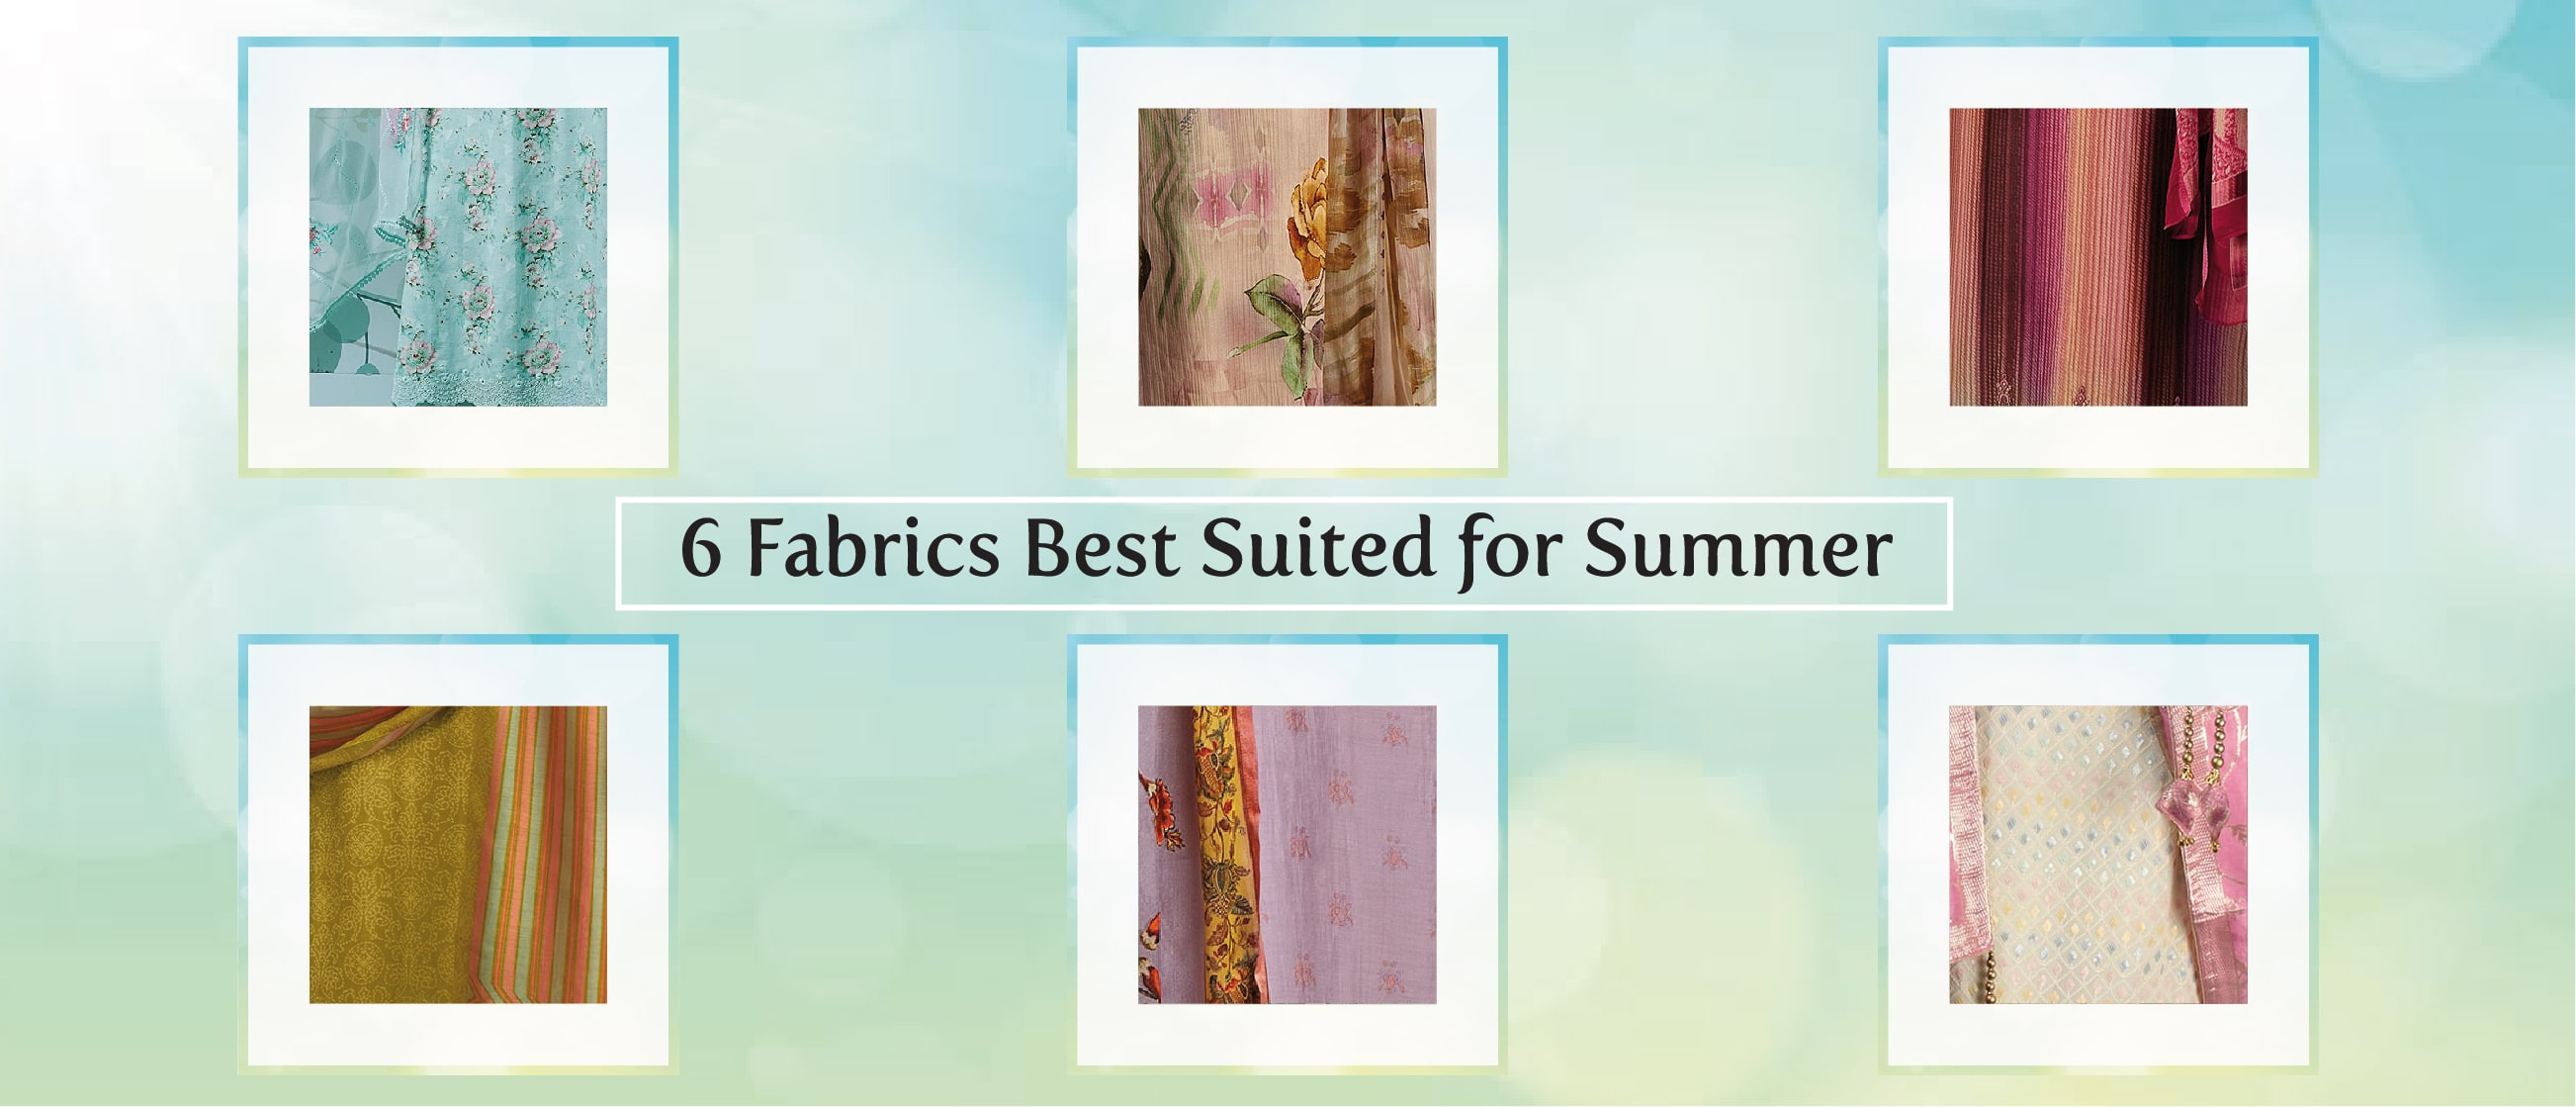 6 Fabrics Best Suited for Summer